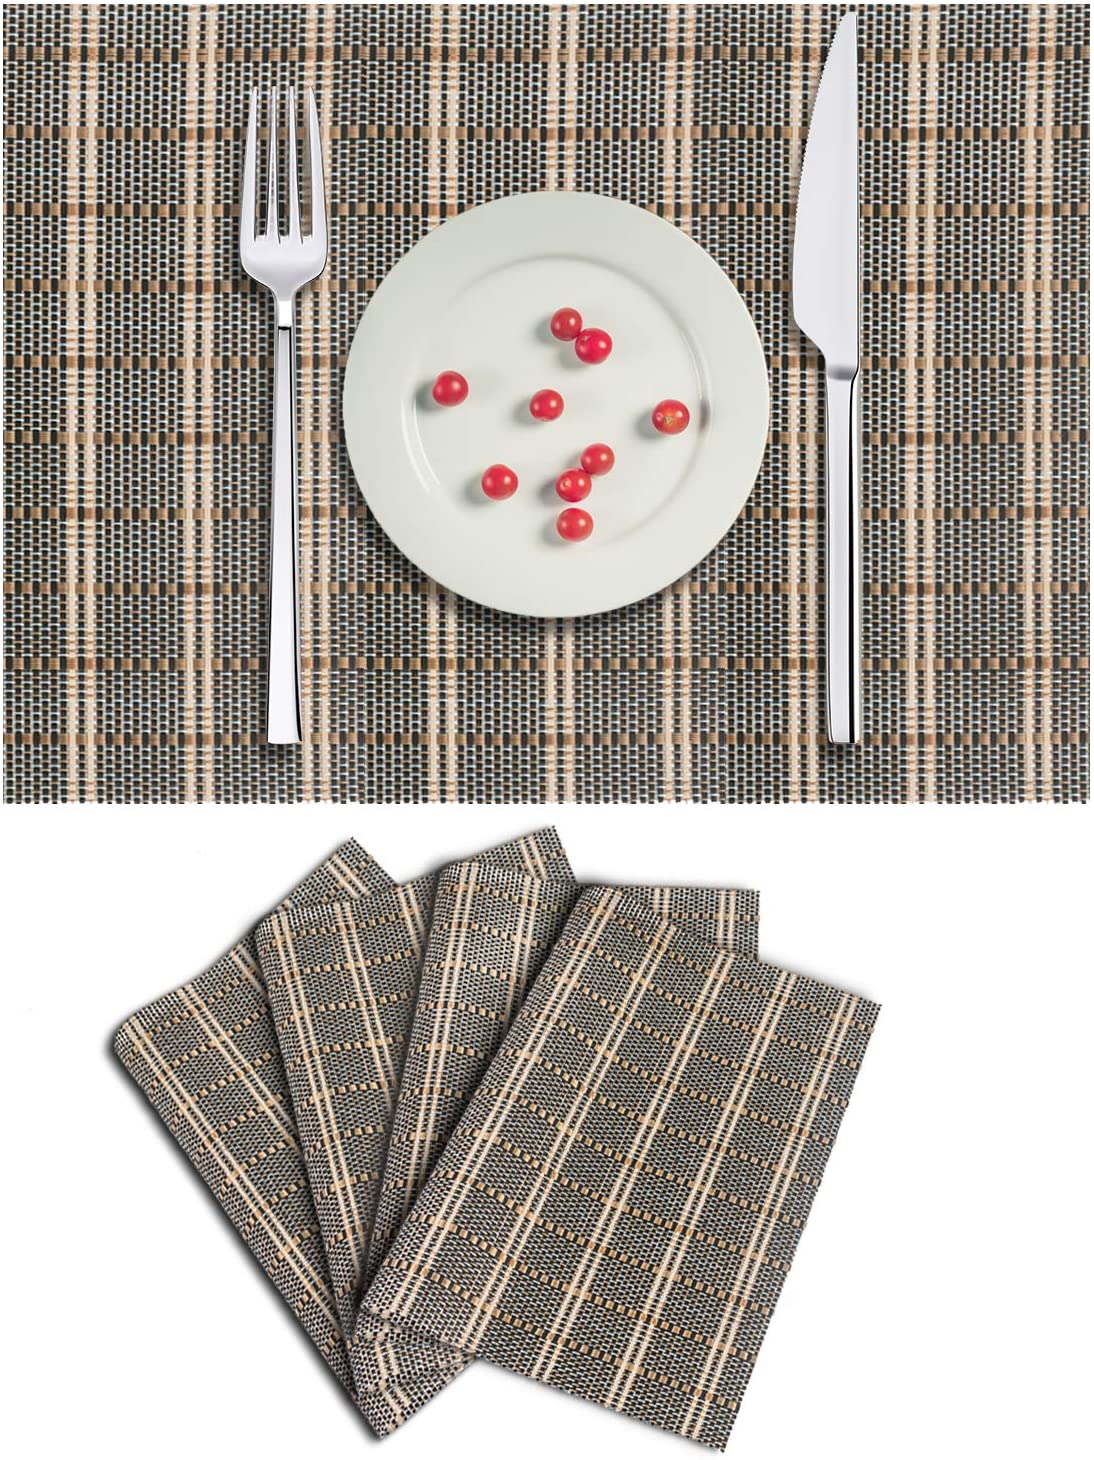 Polytable Placemats Stain Resistant Anti-Skid Washable PVC Table Mats Heat-resistand Woven Vinyl Hard Placemats, Set of 6